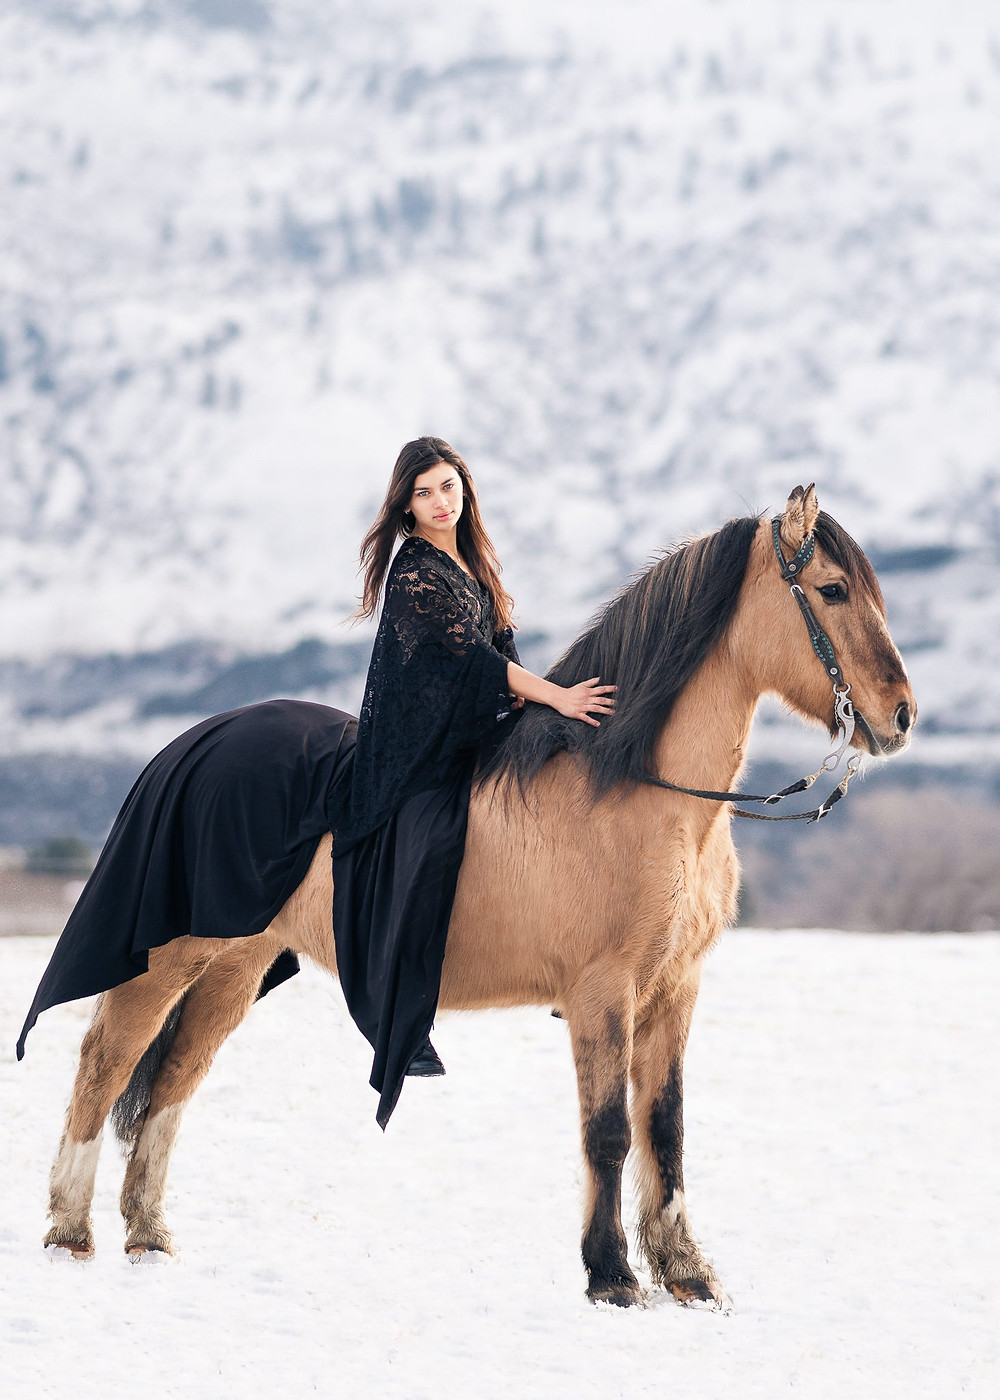 a girl wearing a long black dress standing in snow with a mountain in the background, sitting on her buckskin mustang horse